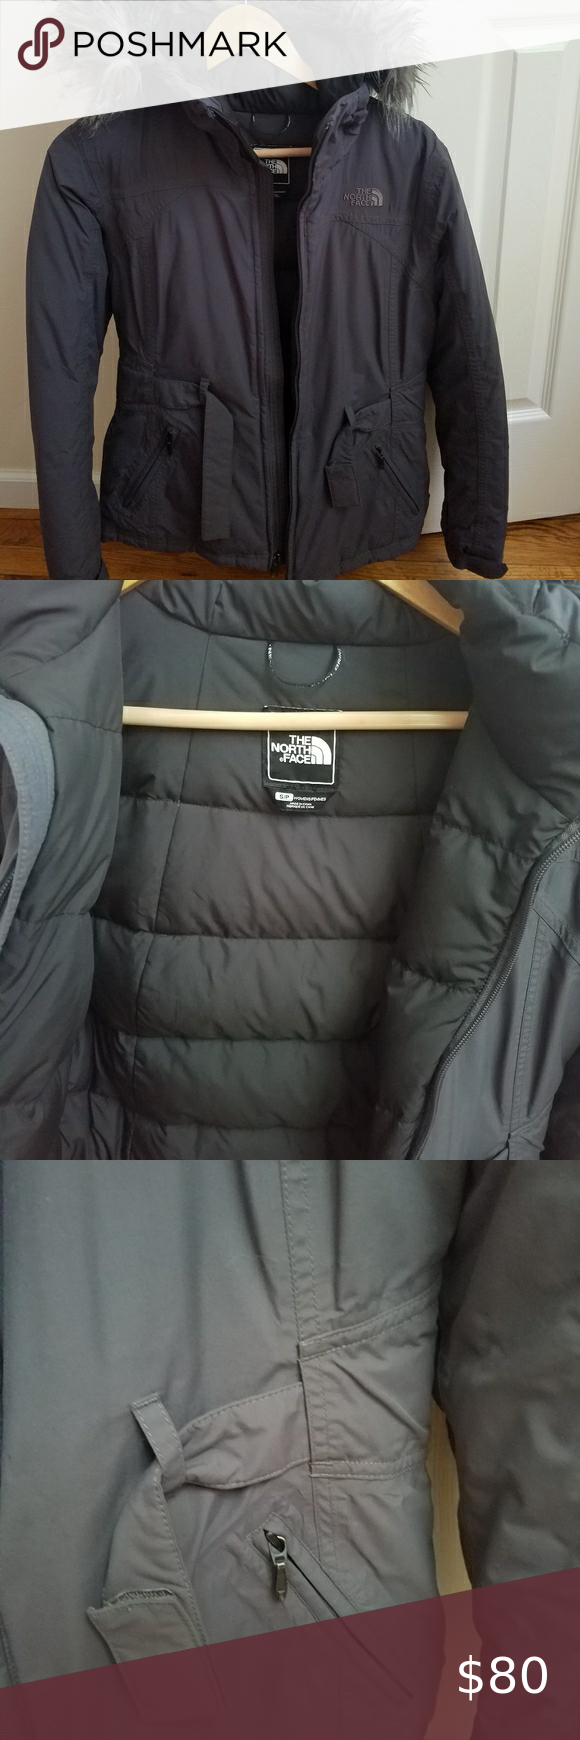 The North Face Women S Jacket North Face Jacket Womens North Face Women Jackets For Women [ 1740 x 580 Pixel ]